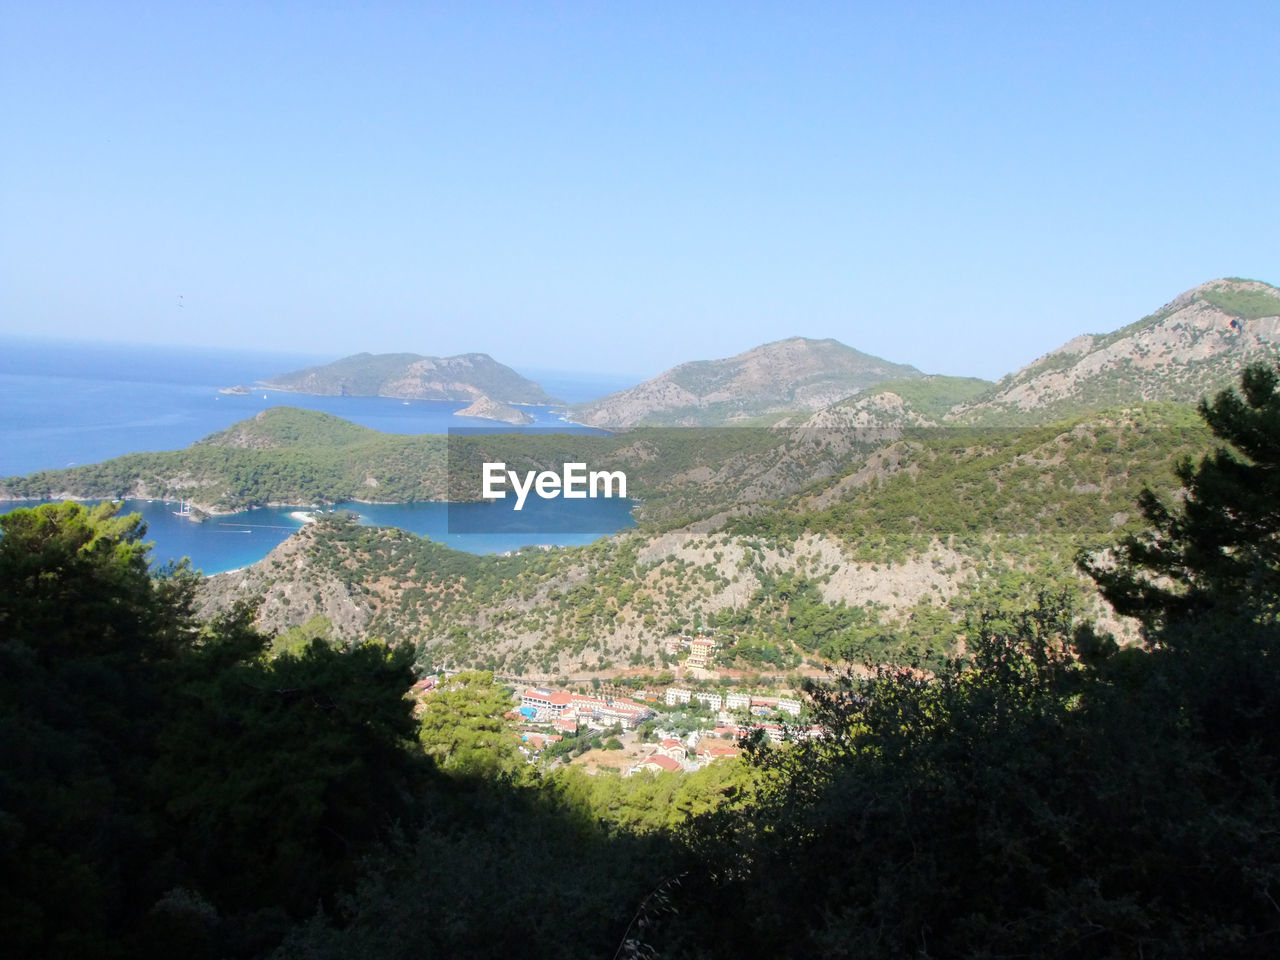 SCENIC VIEW OF MOUNTAINS AND SEA AGAINST CLEAR BLUE SKY